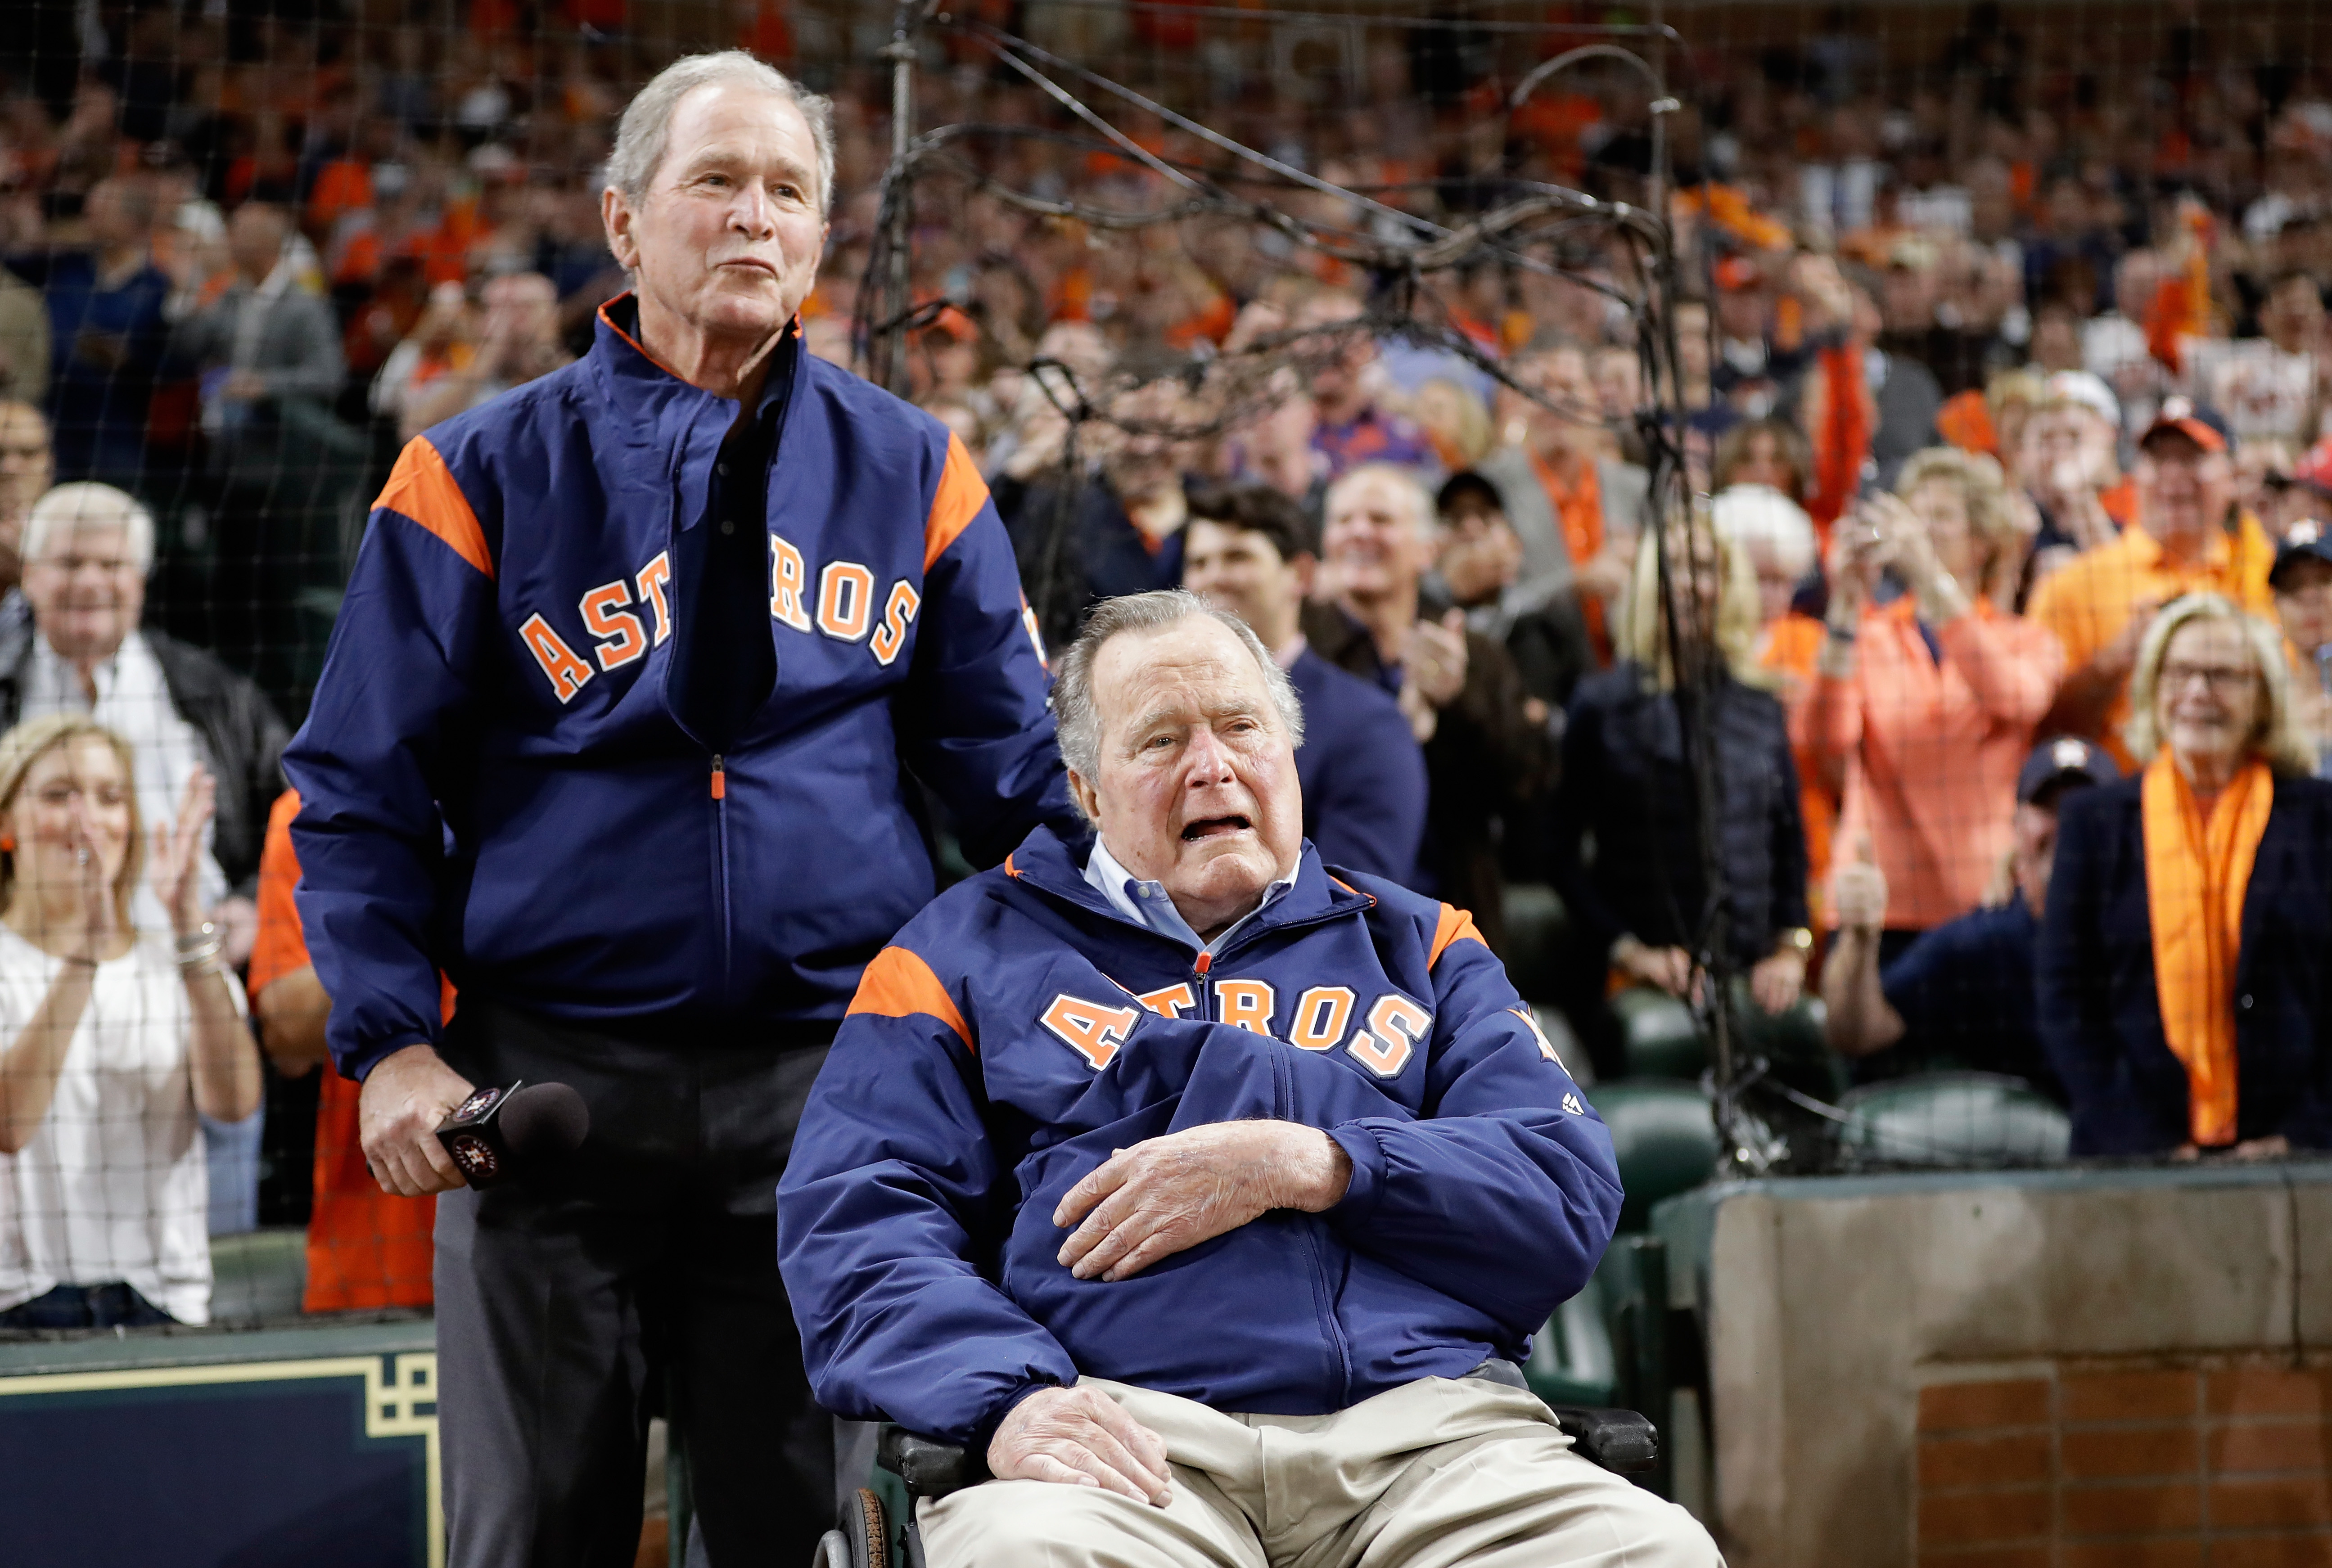 Former United States Presidents George W. Bush and George H.W. Bush speak to the crowd before game five of the 2017 World Series between the Houston Astros and the Los Angeles Dodgers at Minute Maid Park on October 29, 2017 in Houston, Texas.